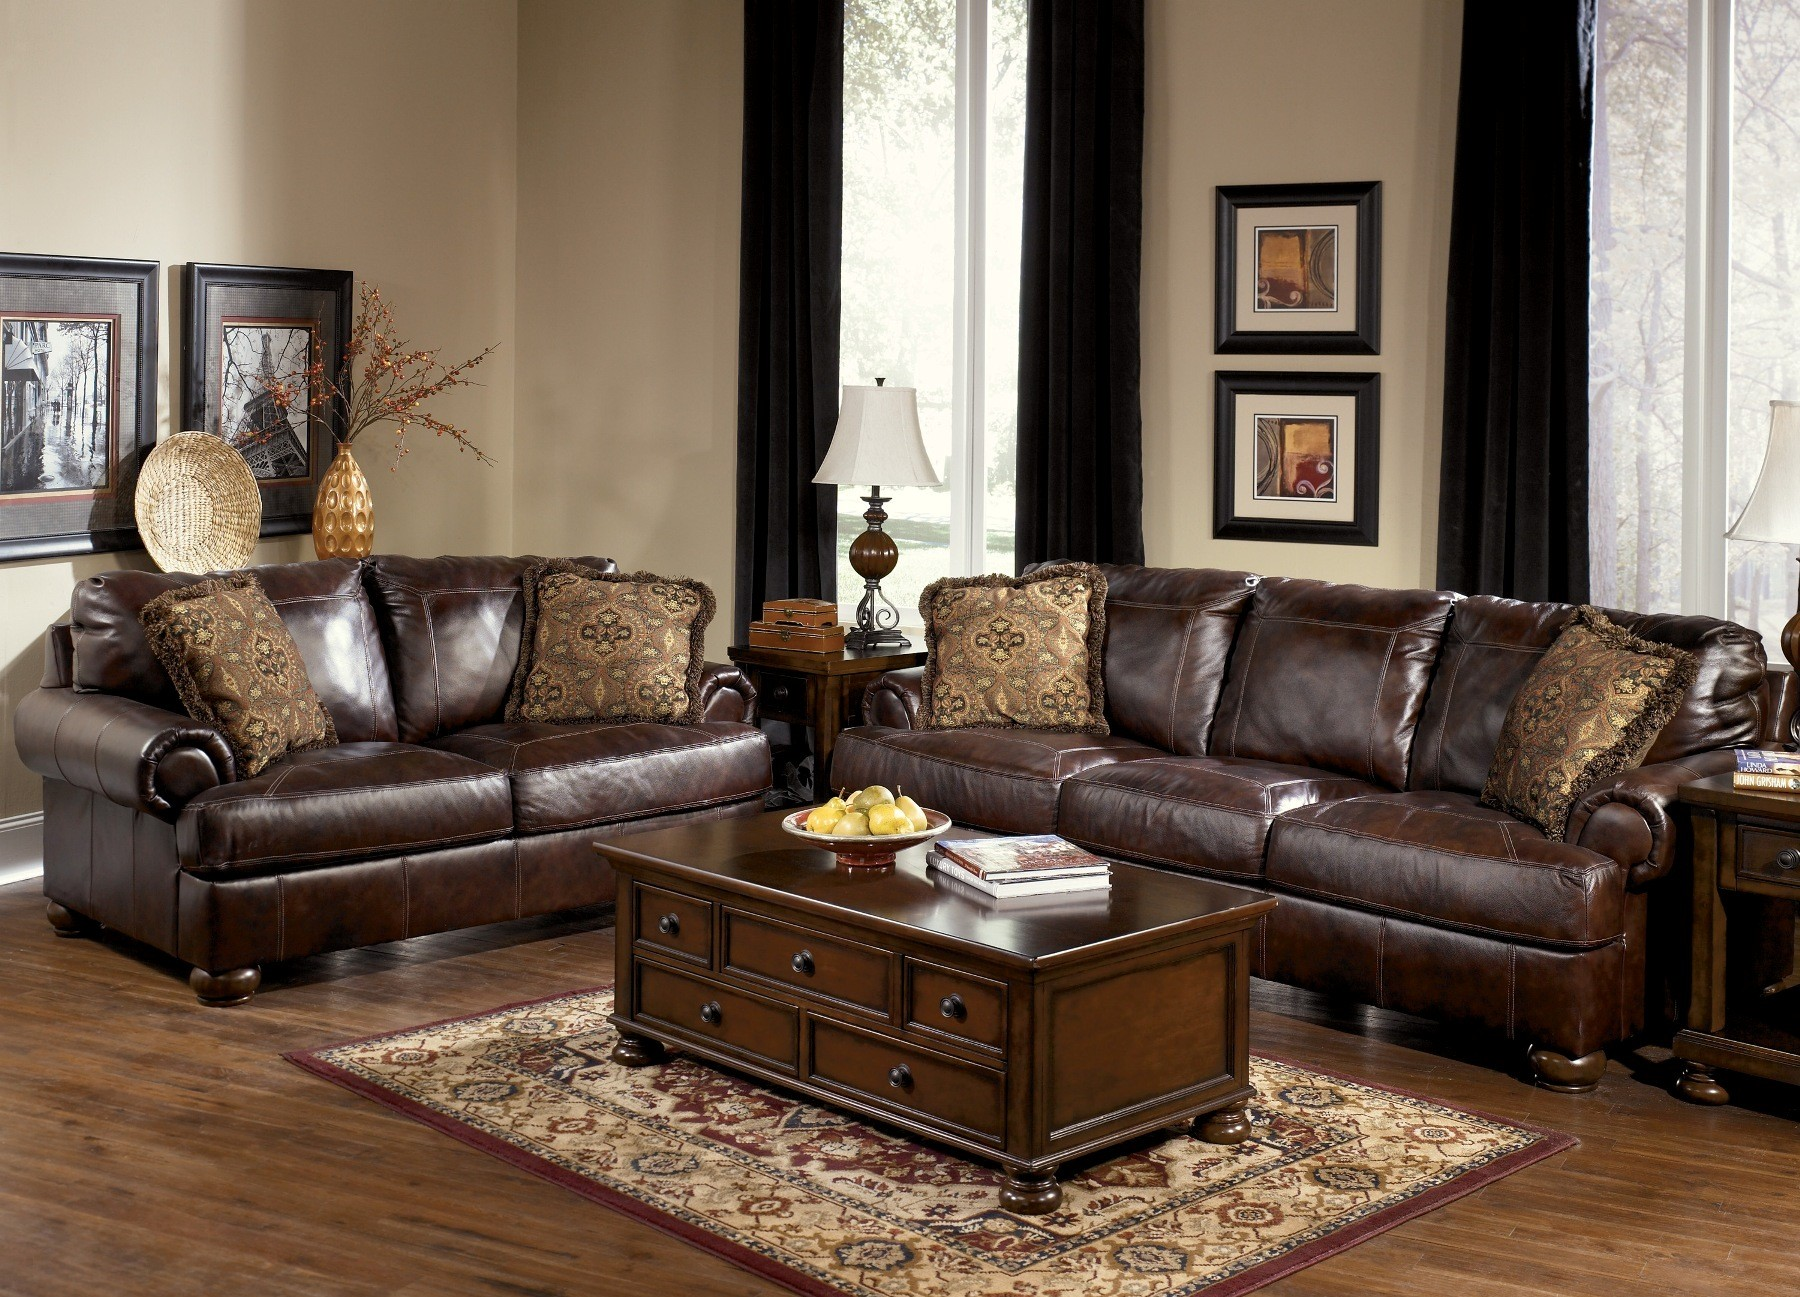 Incroyable Axiom Walnut Living Room Set From Millennium By Ashley. 2295635